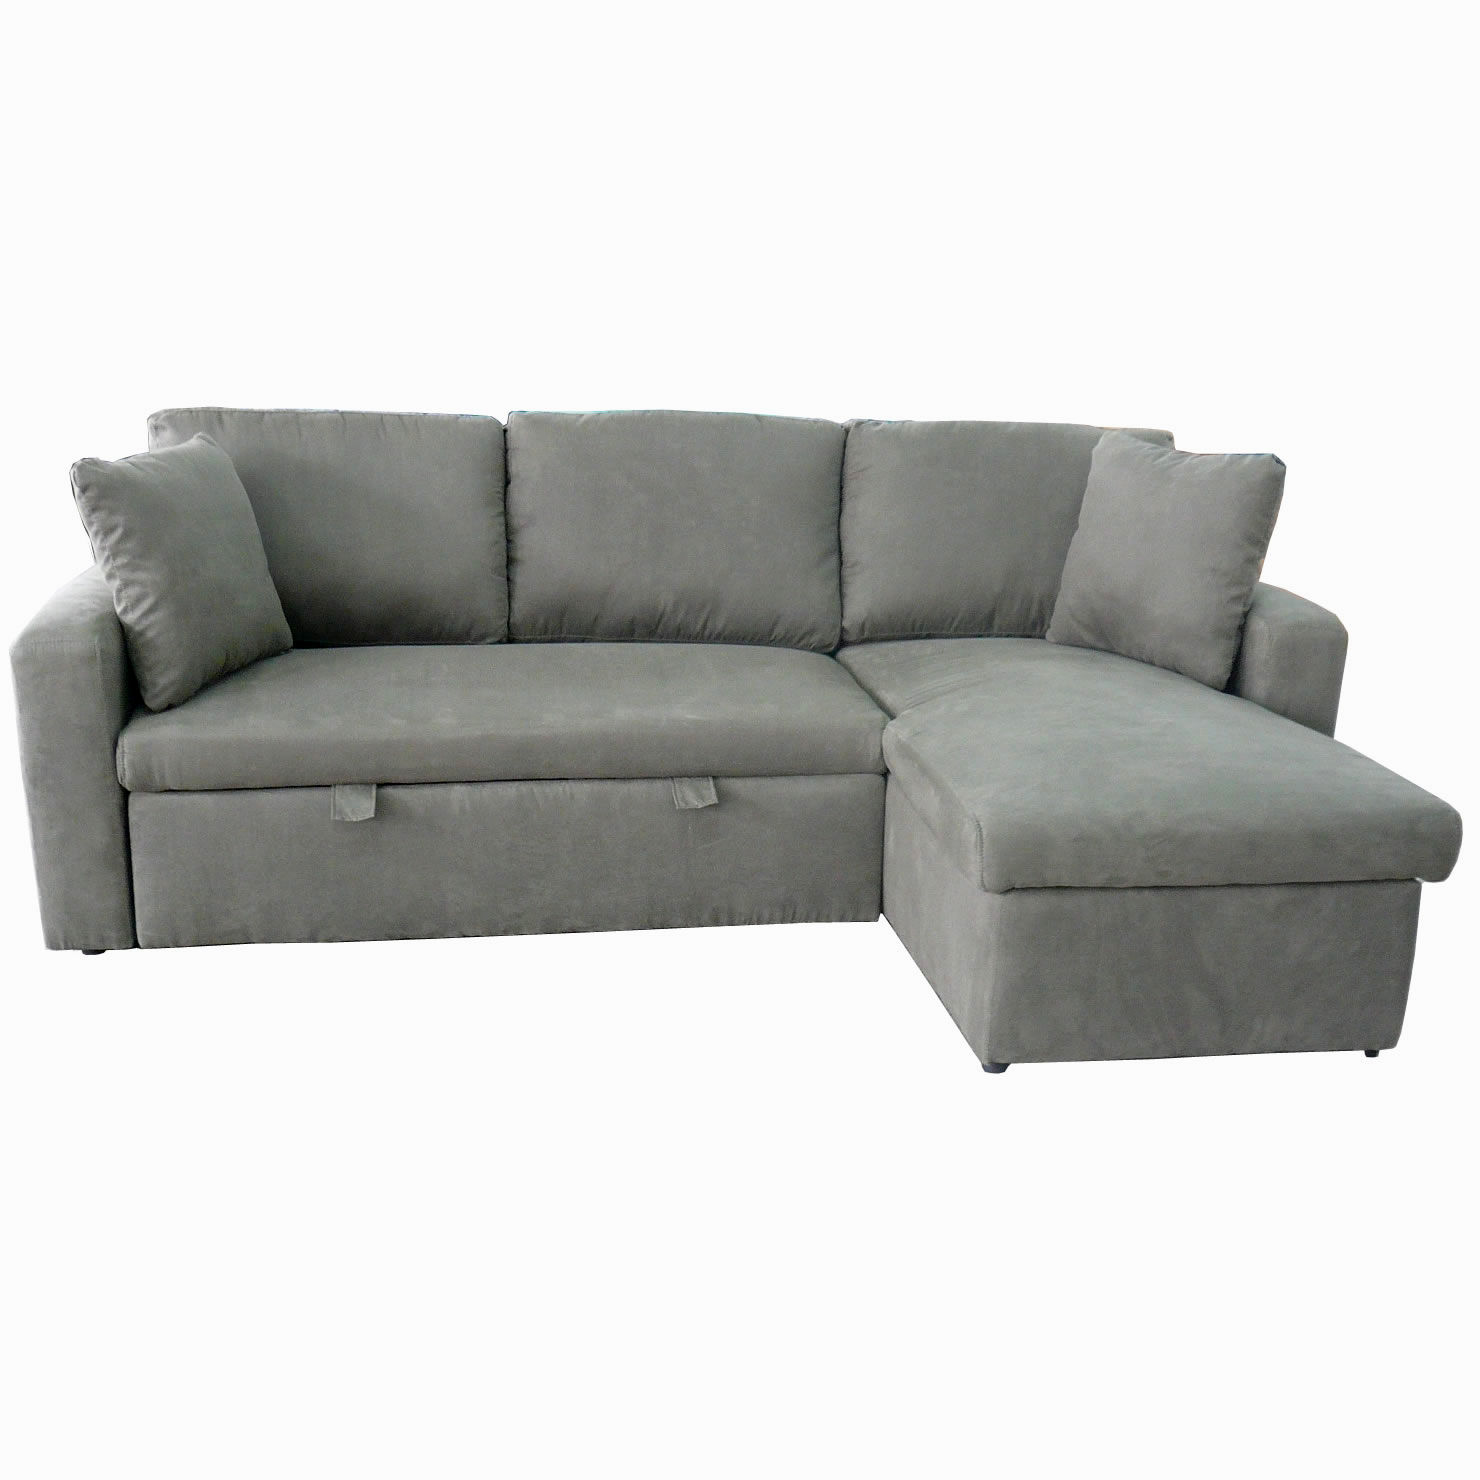 contemporary sofa pull out bed concept-Excellent sofa Pull Out Bed Photo